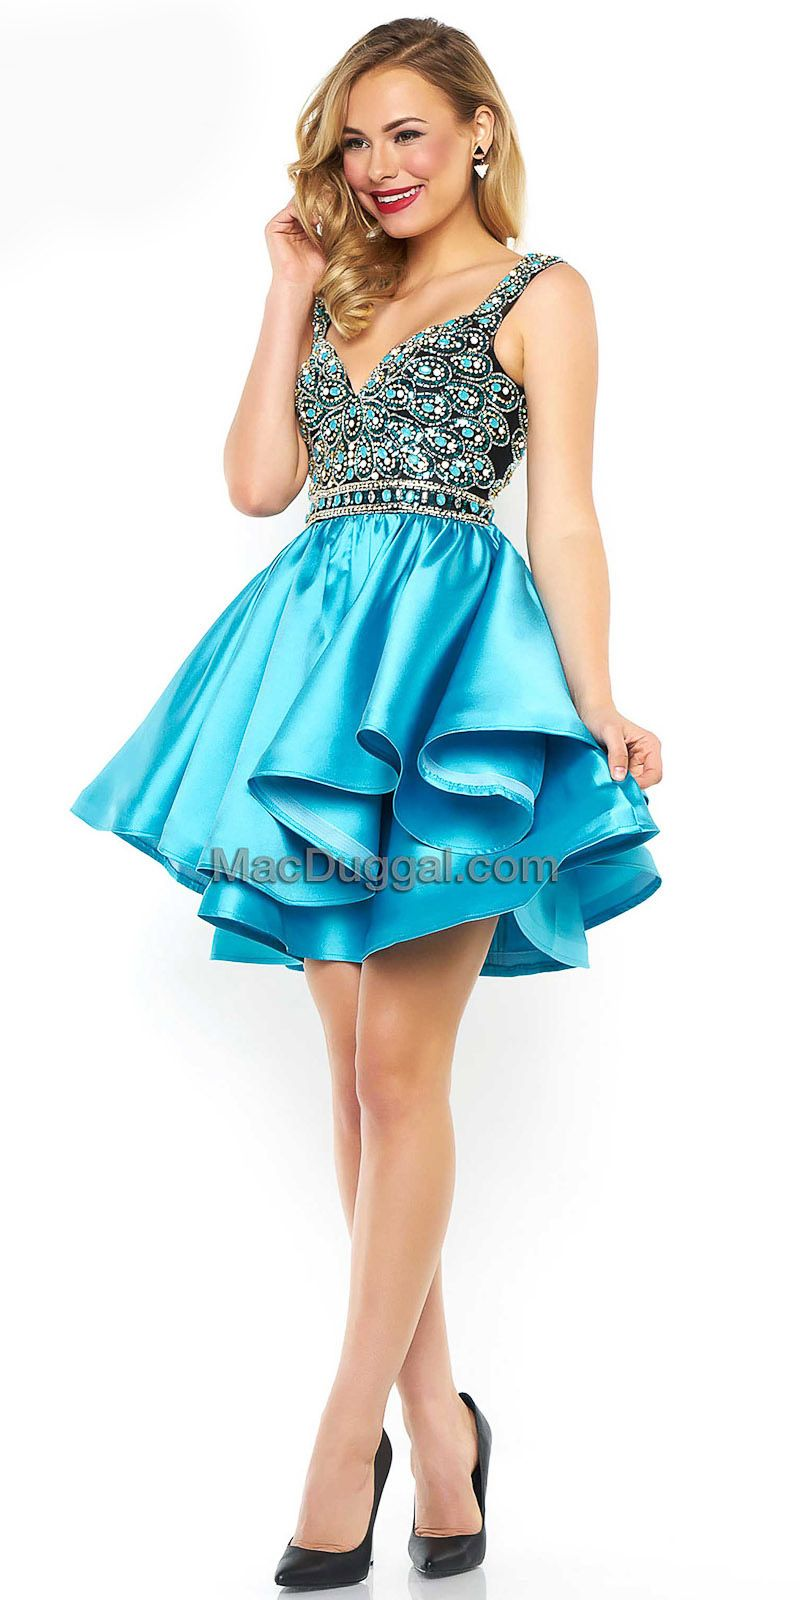 91553344065 Fit and Flare Embellished Peacock Homecoming Dress by Mac Duggal  edressme